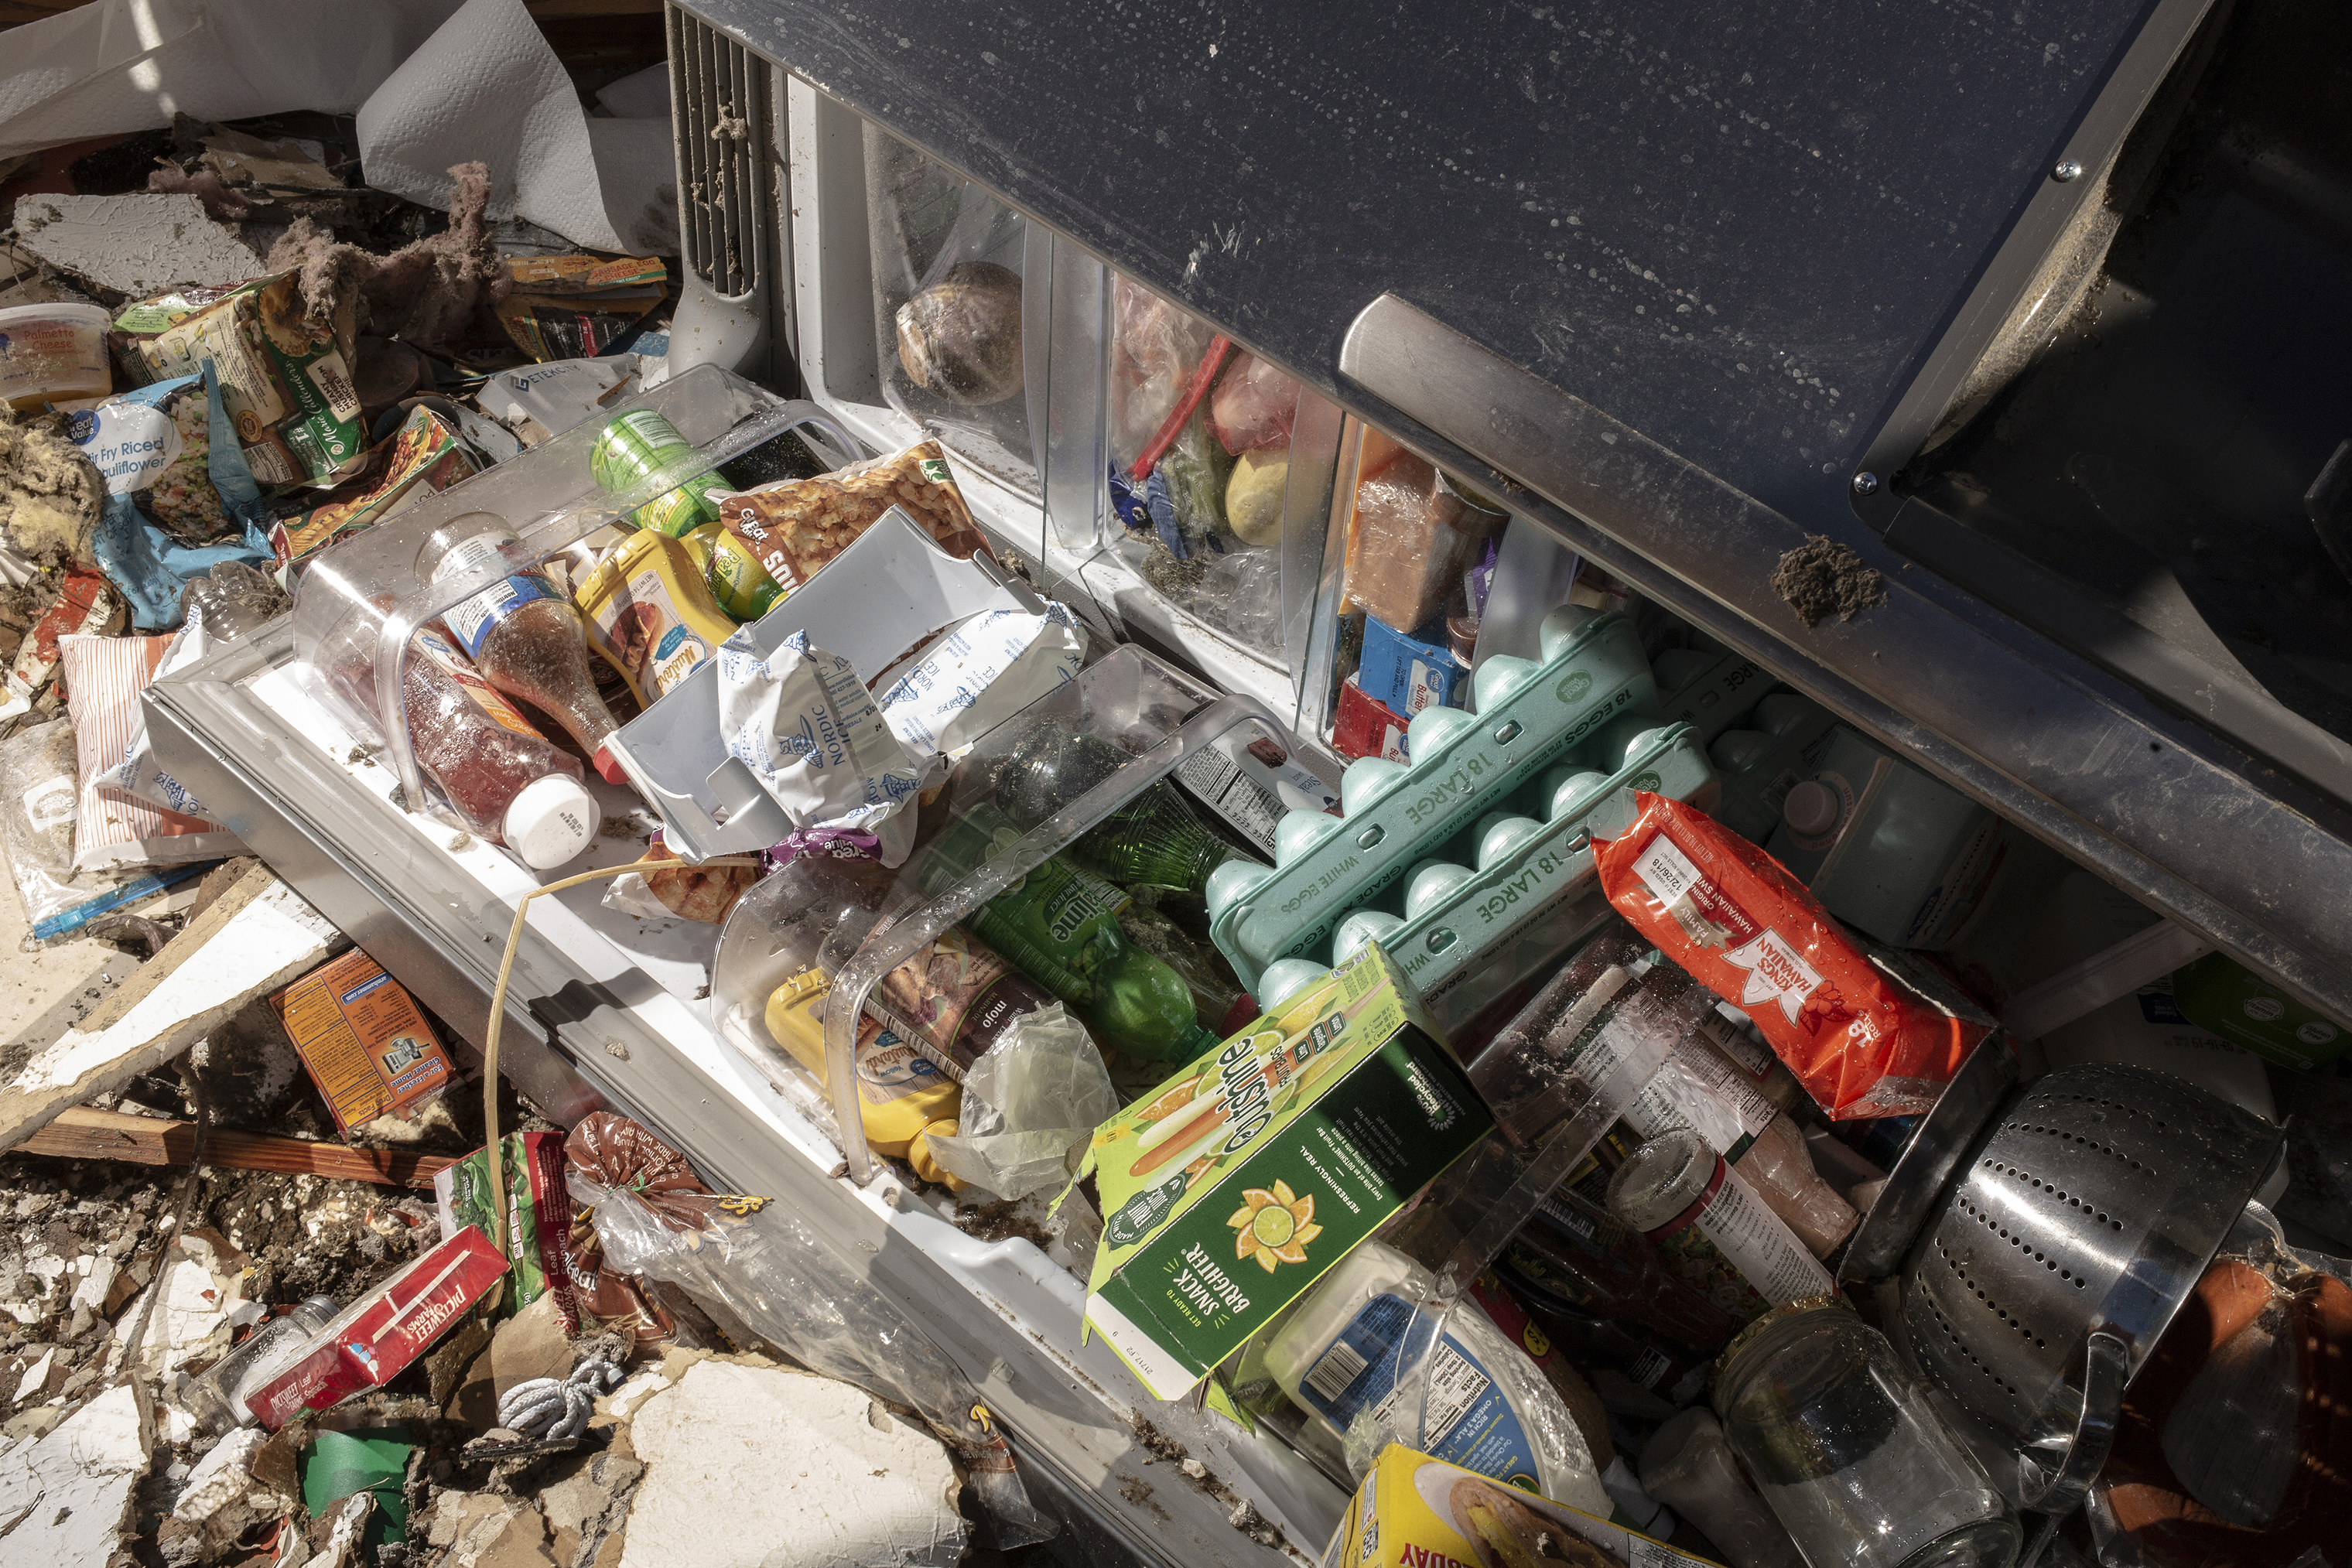 The contents of the Mattocks' refrigerator strewn on their kitchen floor after a tornado passed over killing several people and destroying homes in Beauregard, Alabama on March 4, 2019.